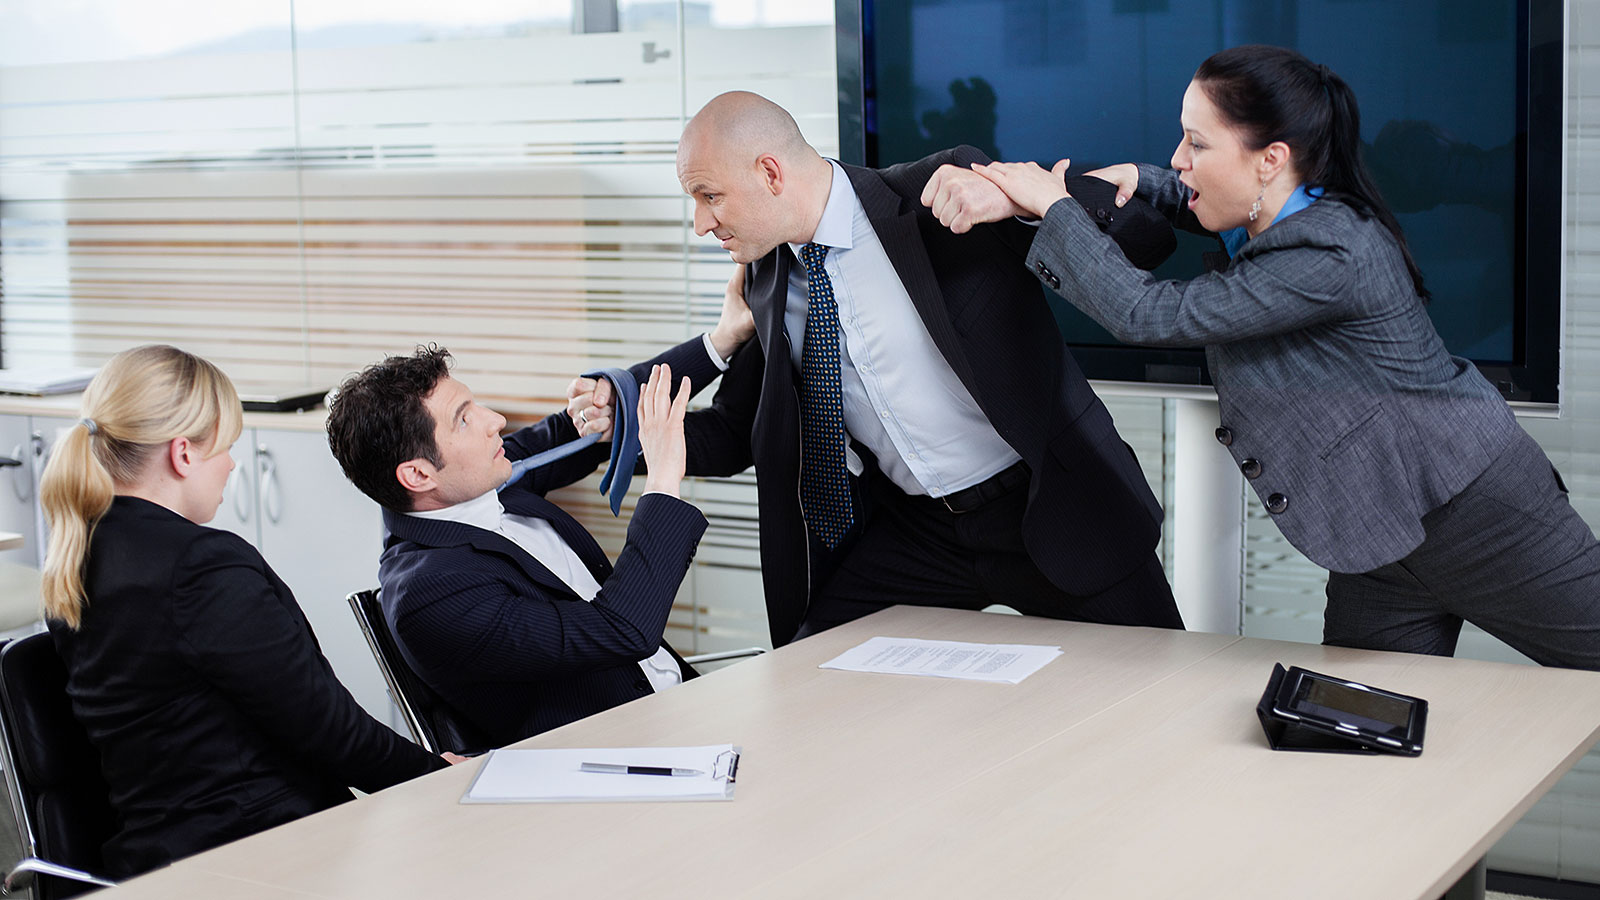 https://www.theladders.com/wp-content/uploads/office_fight_190610.jpg